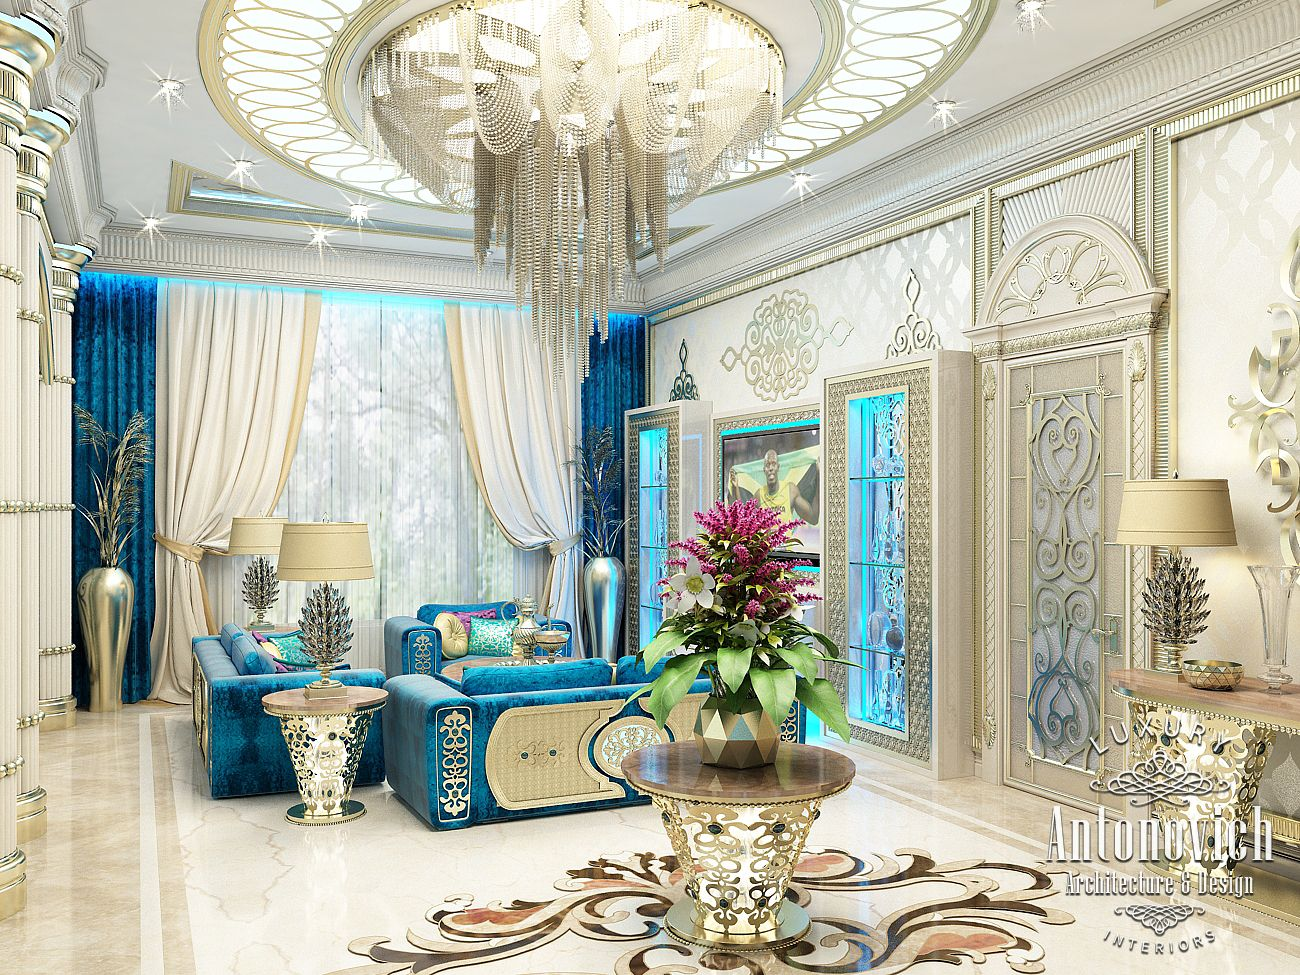 Luxury antonovich design uae 2015 - Decor oriental design interieur luxe antonovich ...